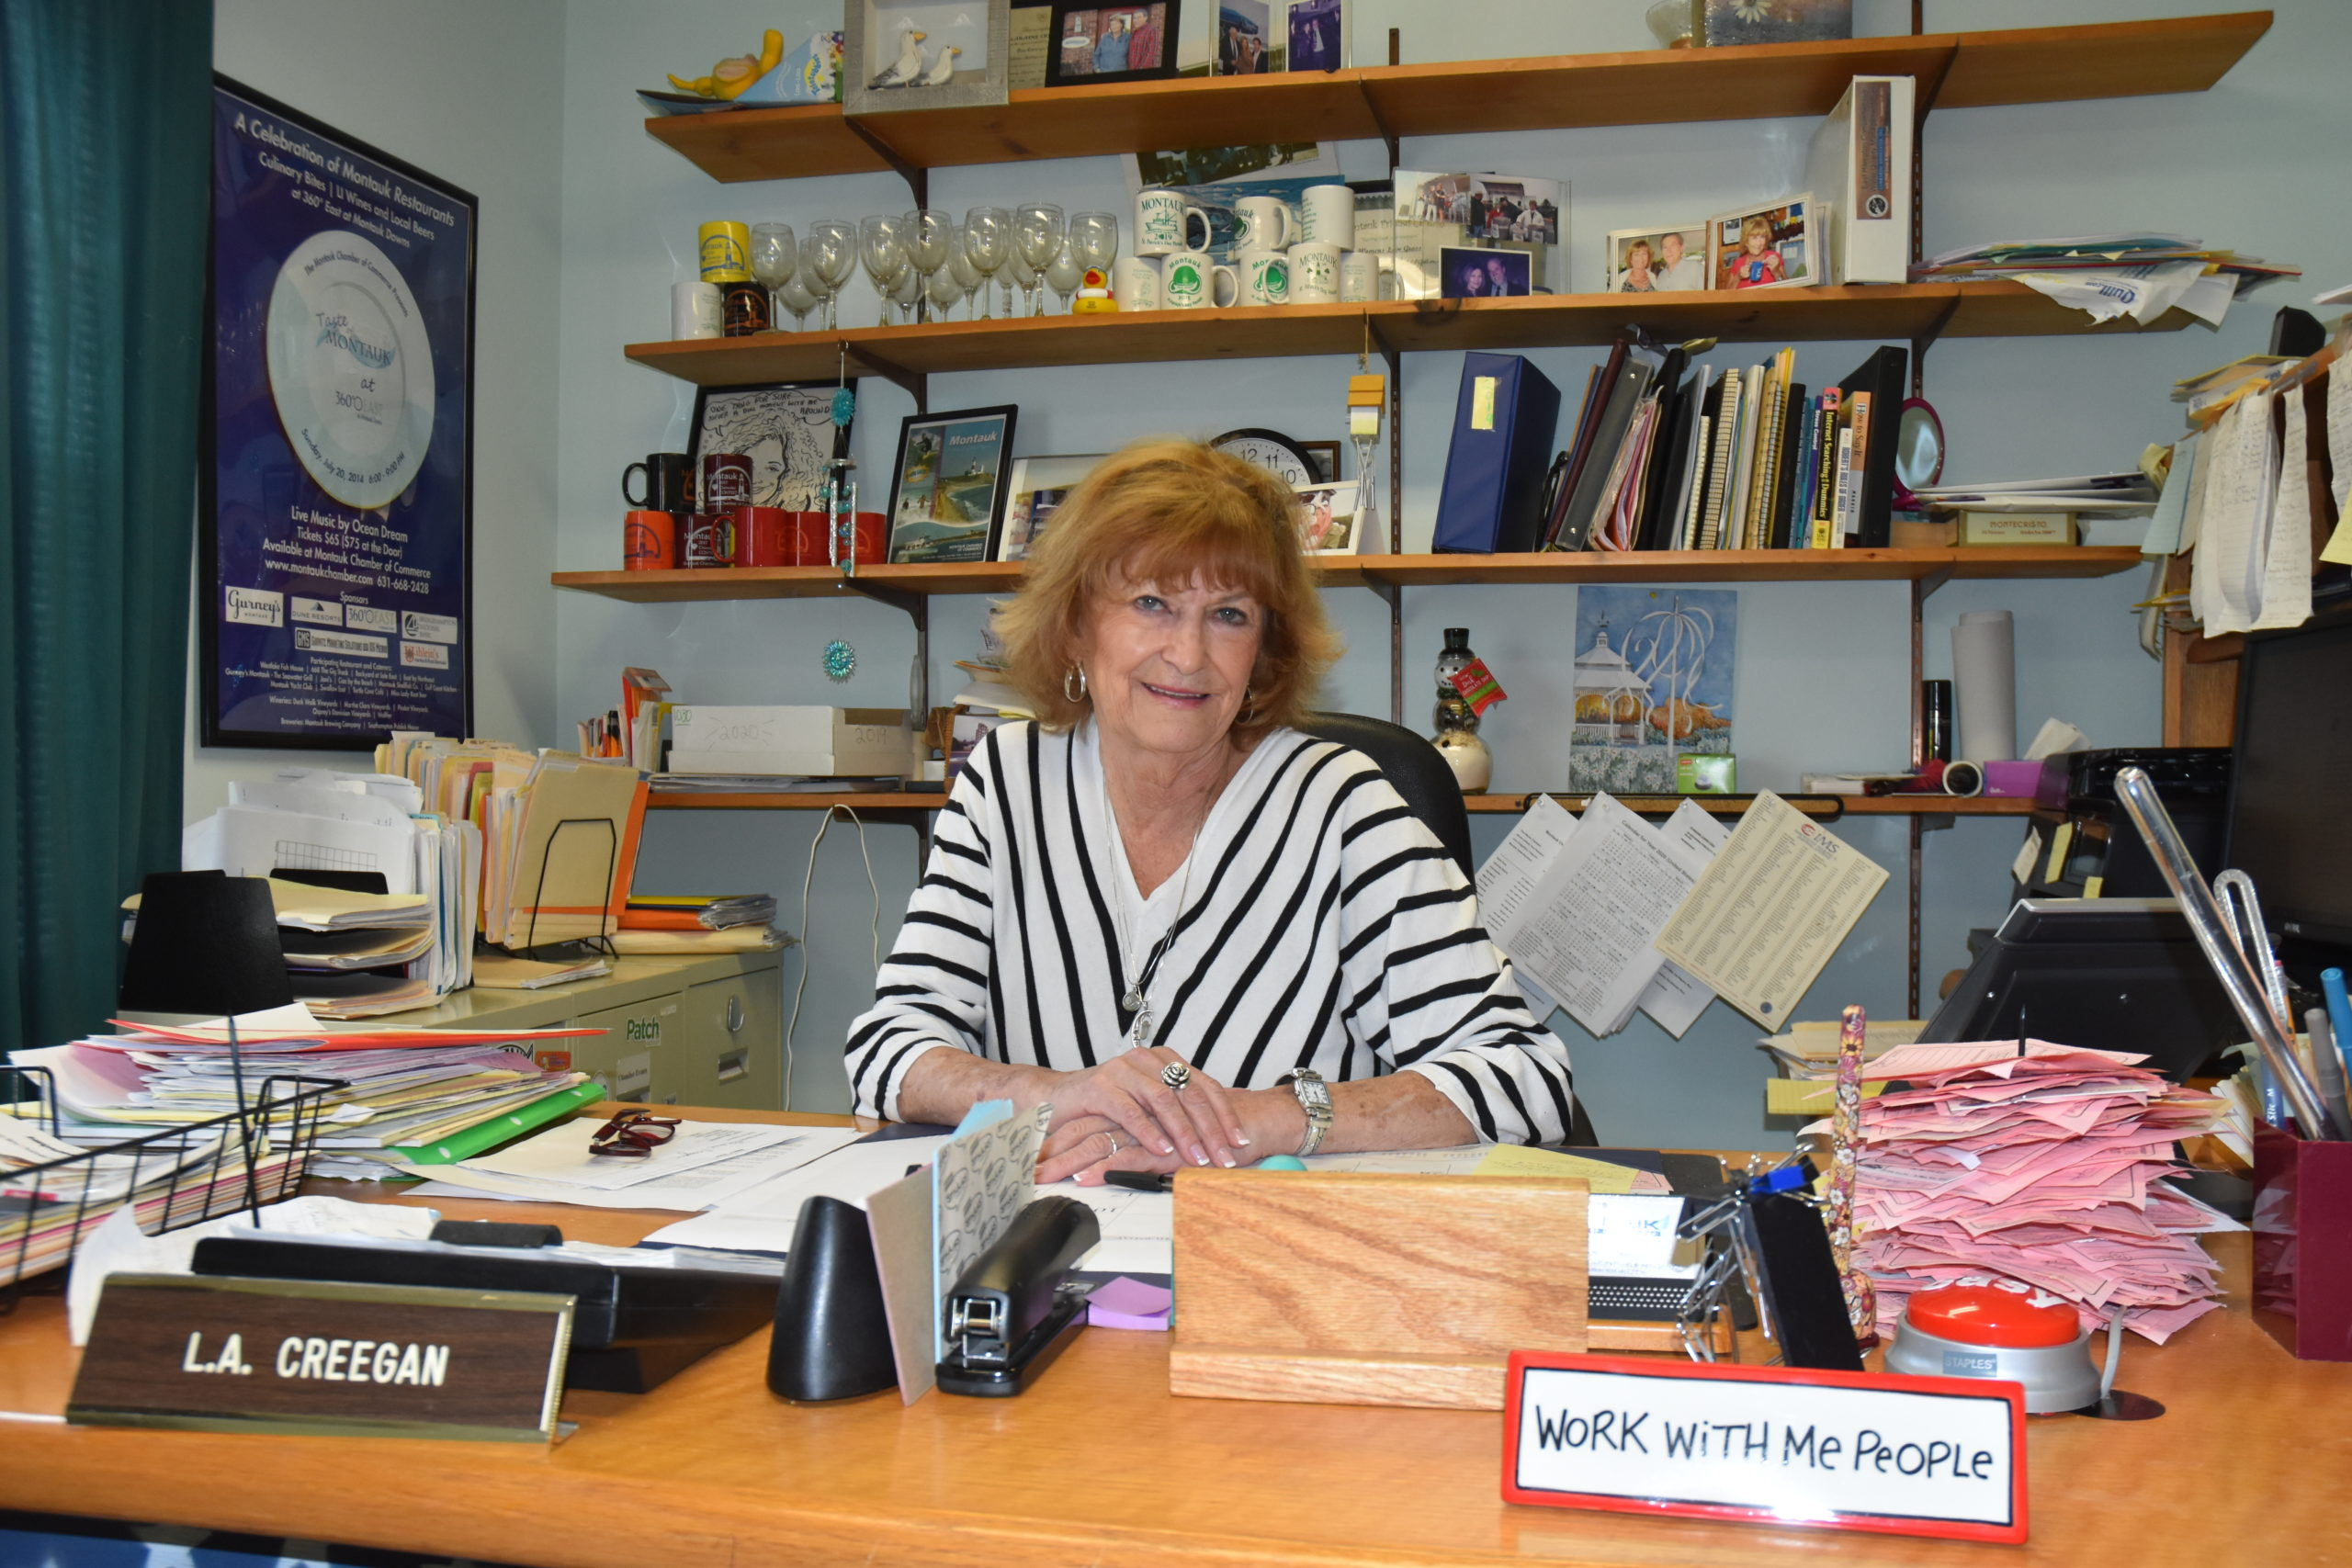 Montauk Chamber of Commerce Director Larraine Creegan will retire in April after 14 years at the helm of the organization. STEPHEN J. KOTZ